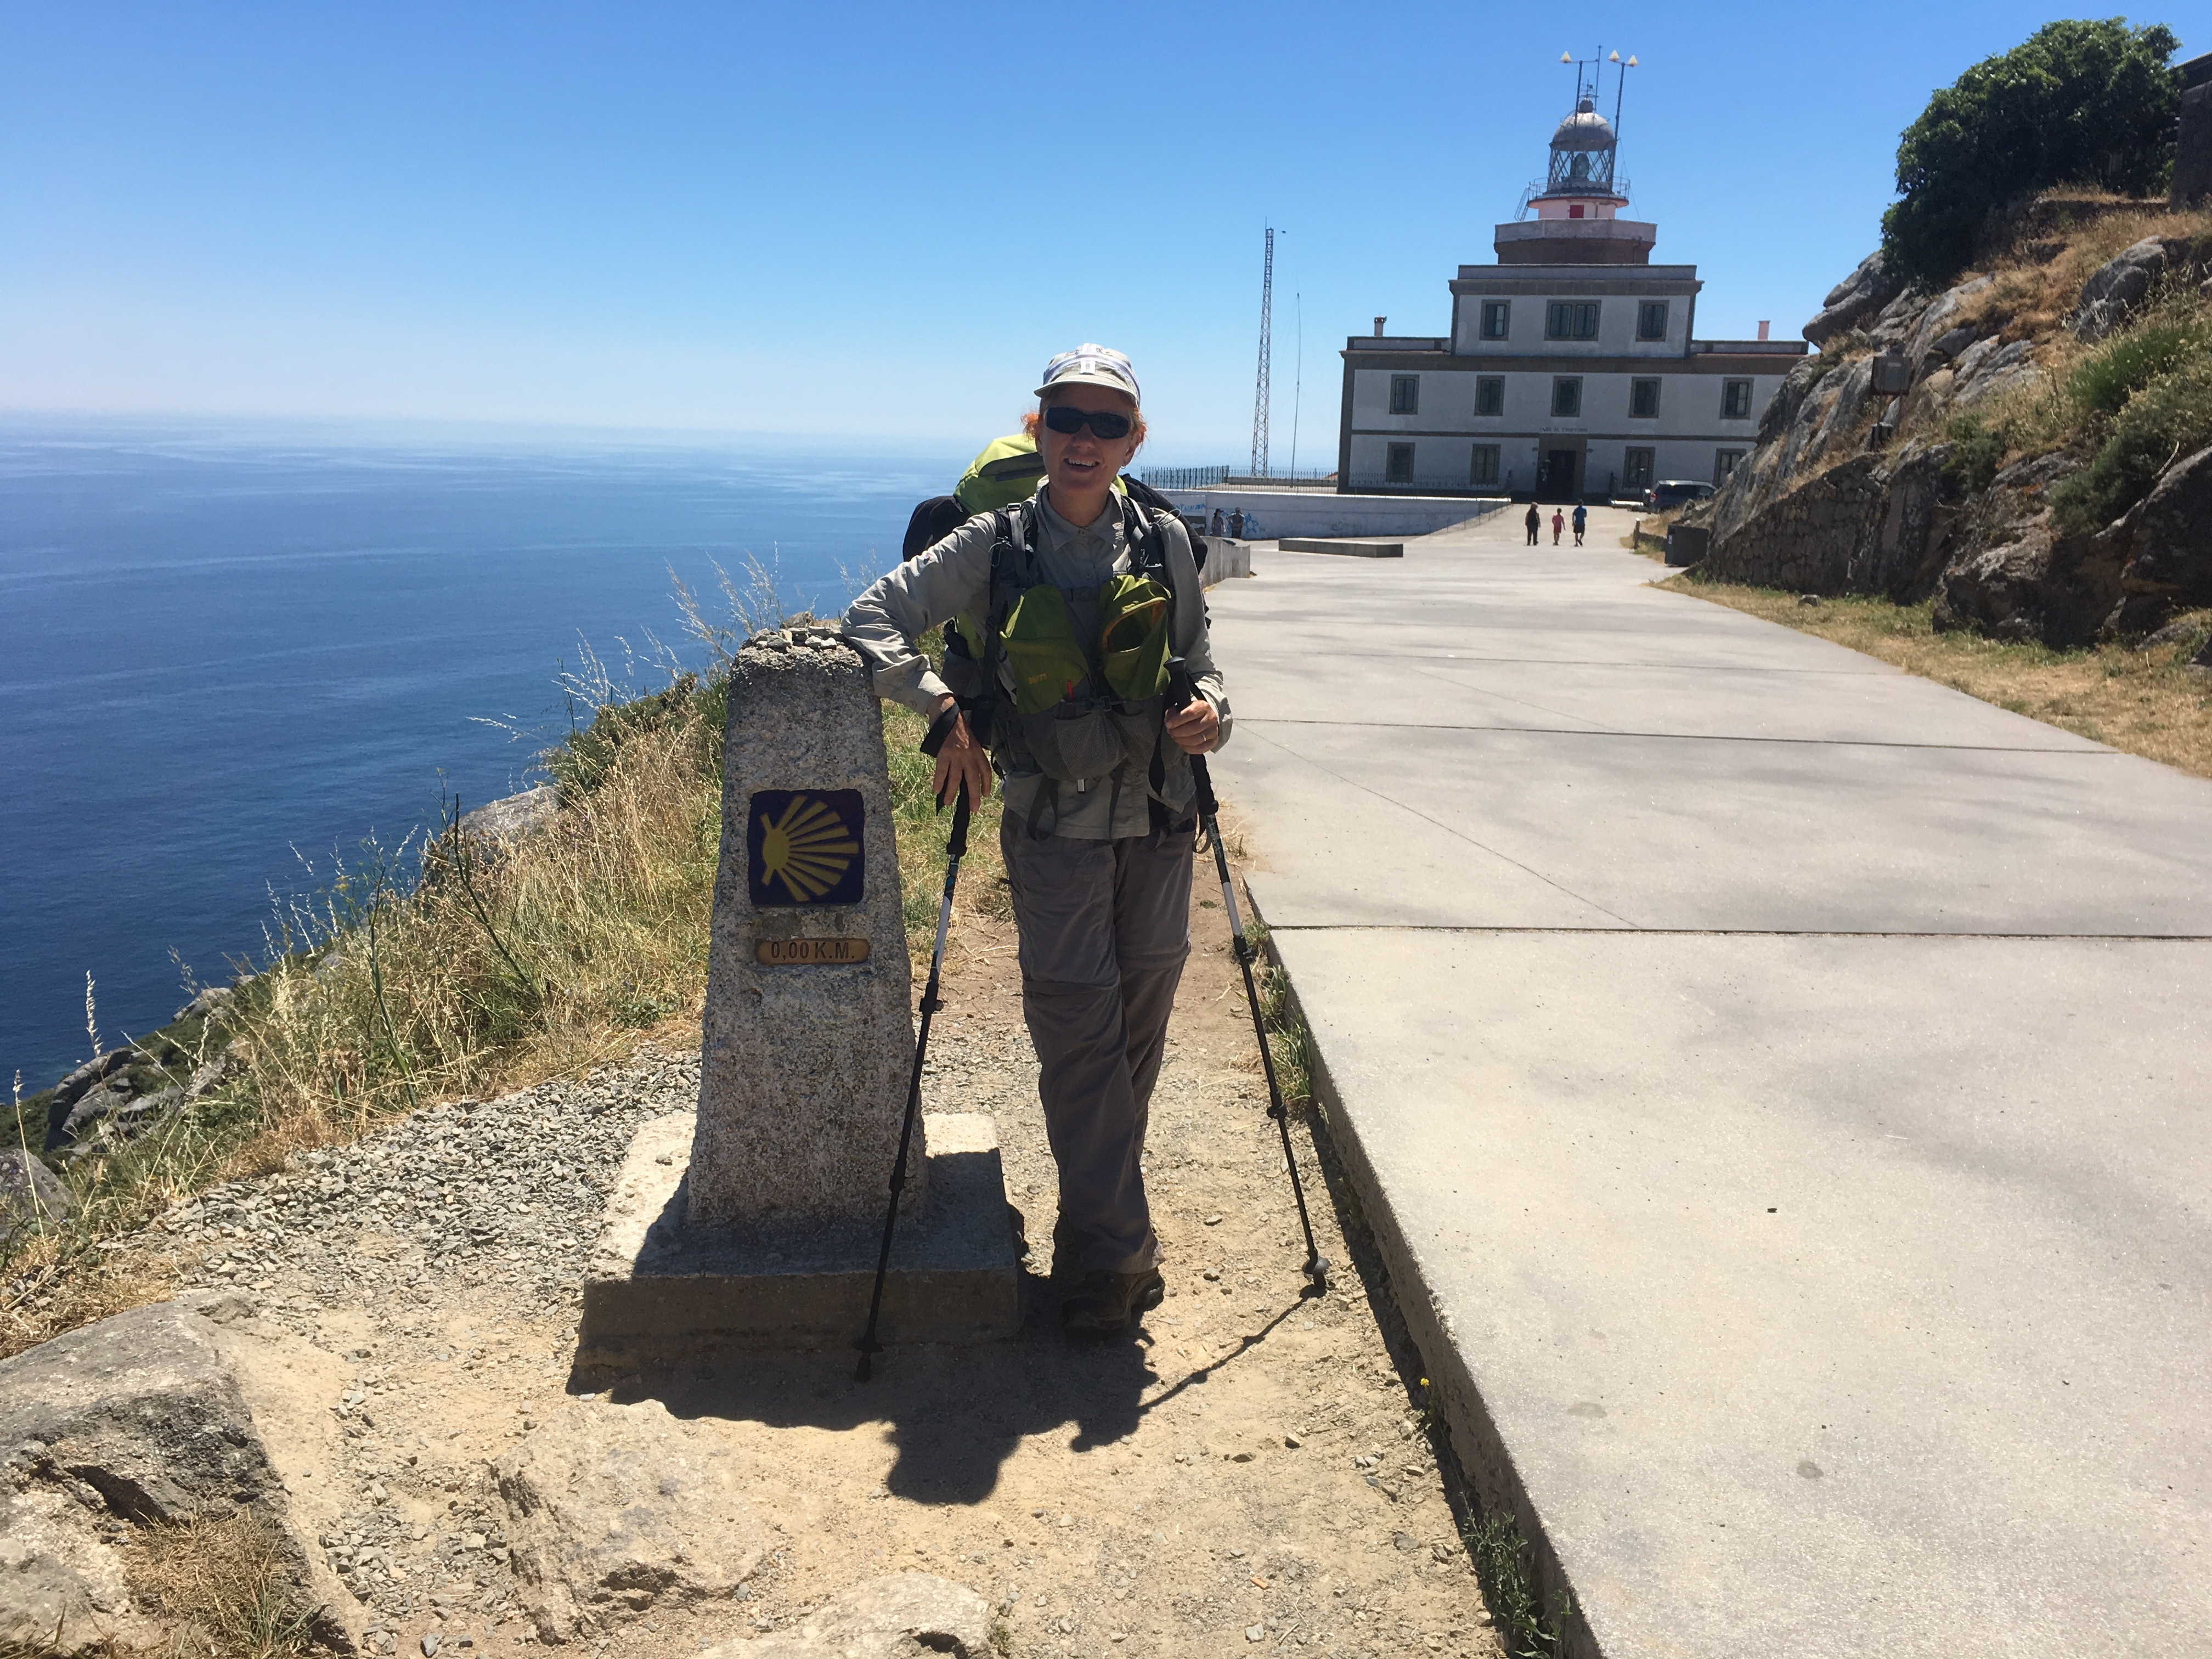 Victoria Osborne leaning on the final milepost in the Camino across Spain